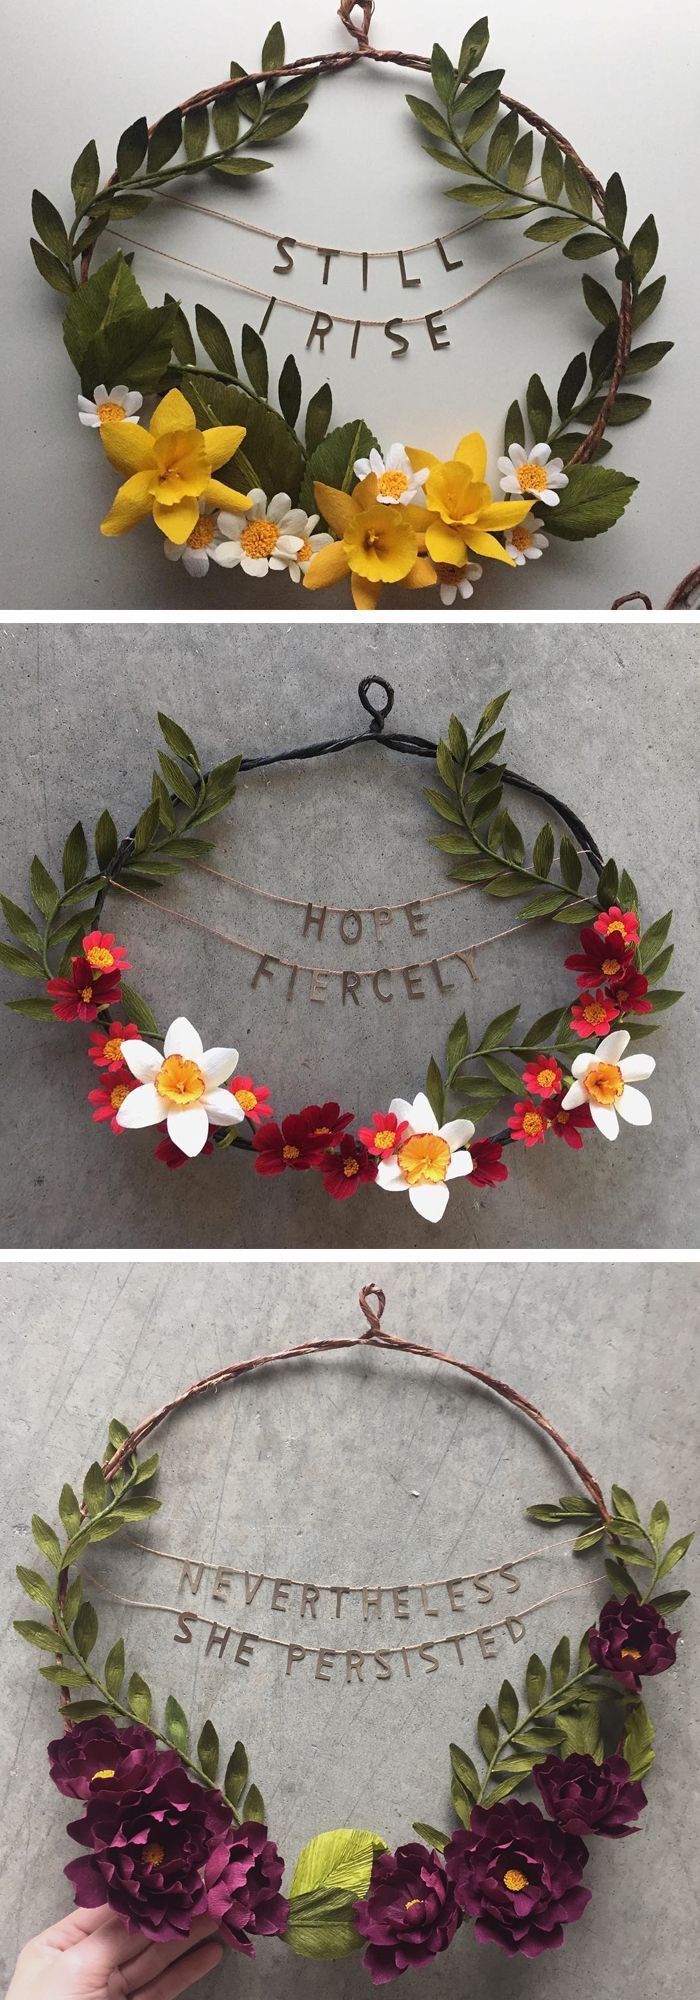 Photo of Paper flower wreaths combine beauty with powerful phrases to strengthen you every day